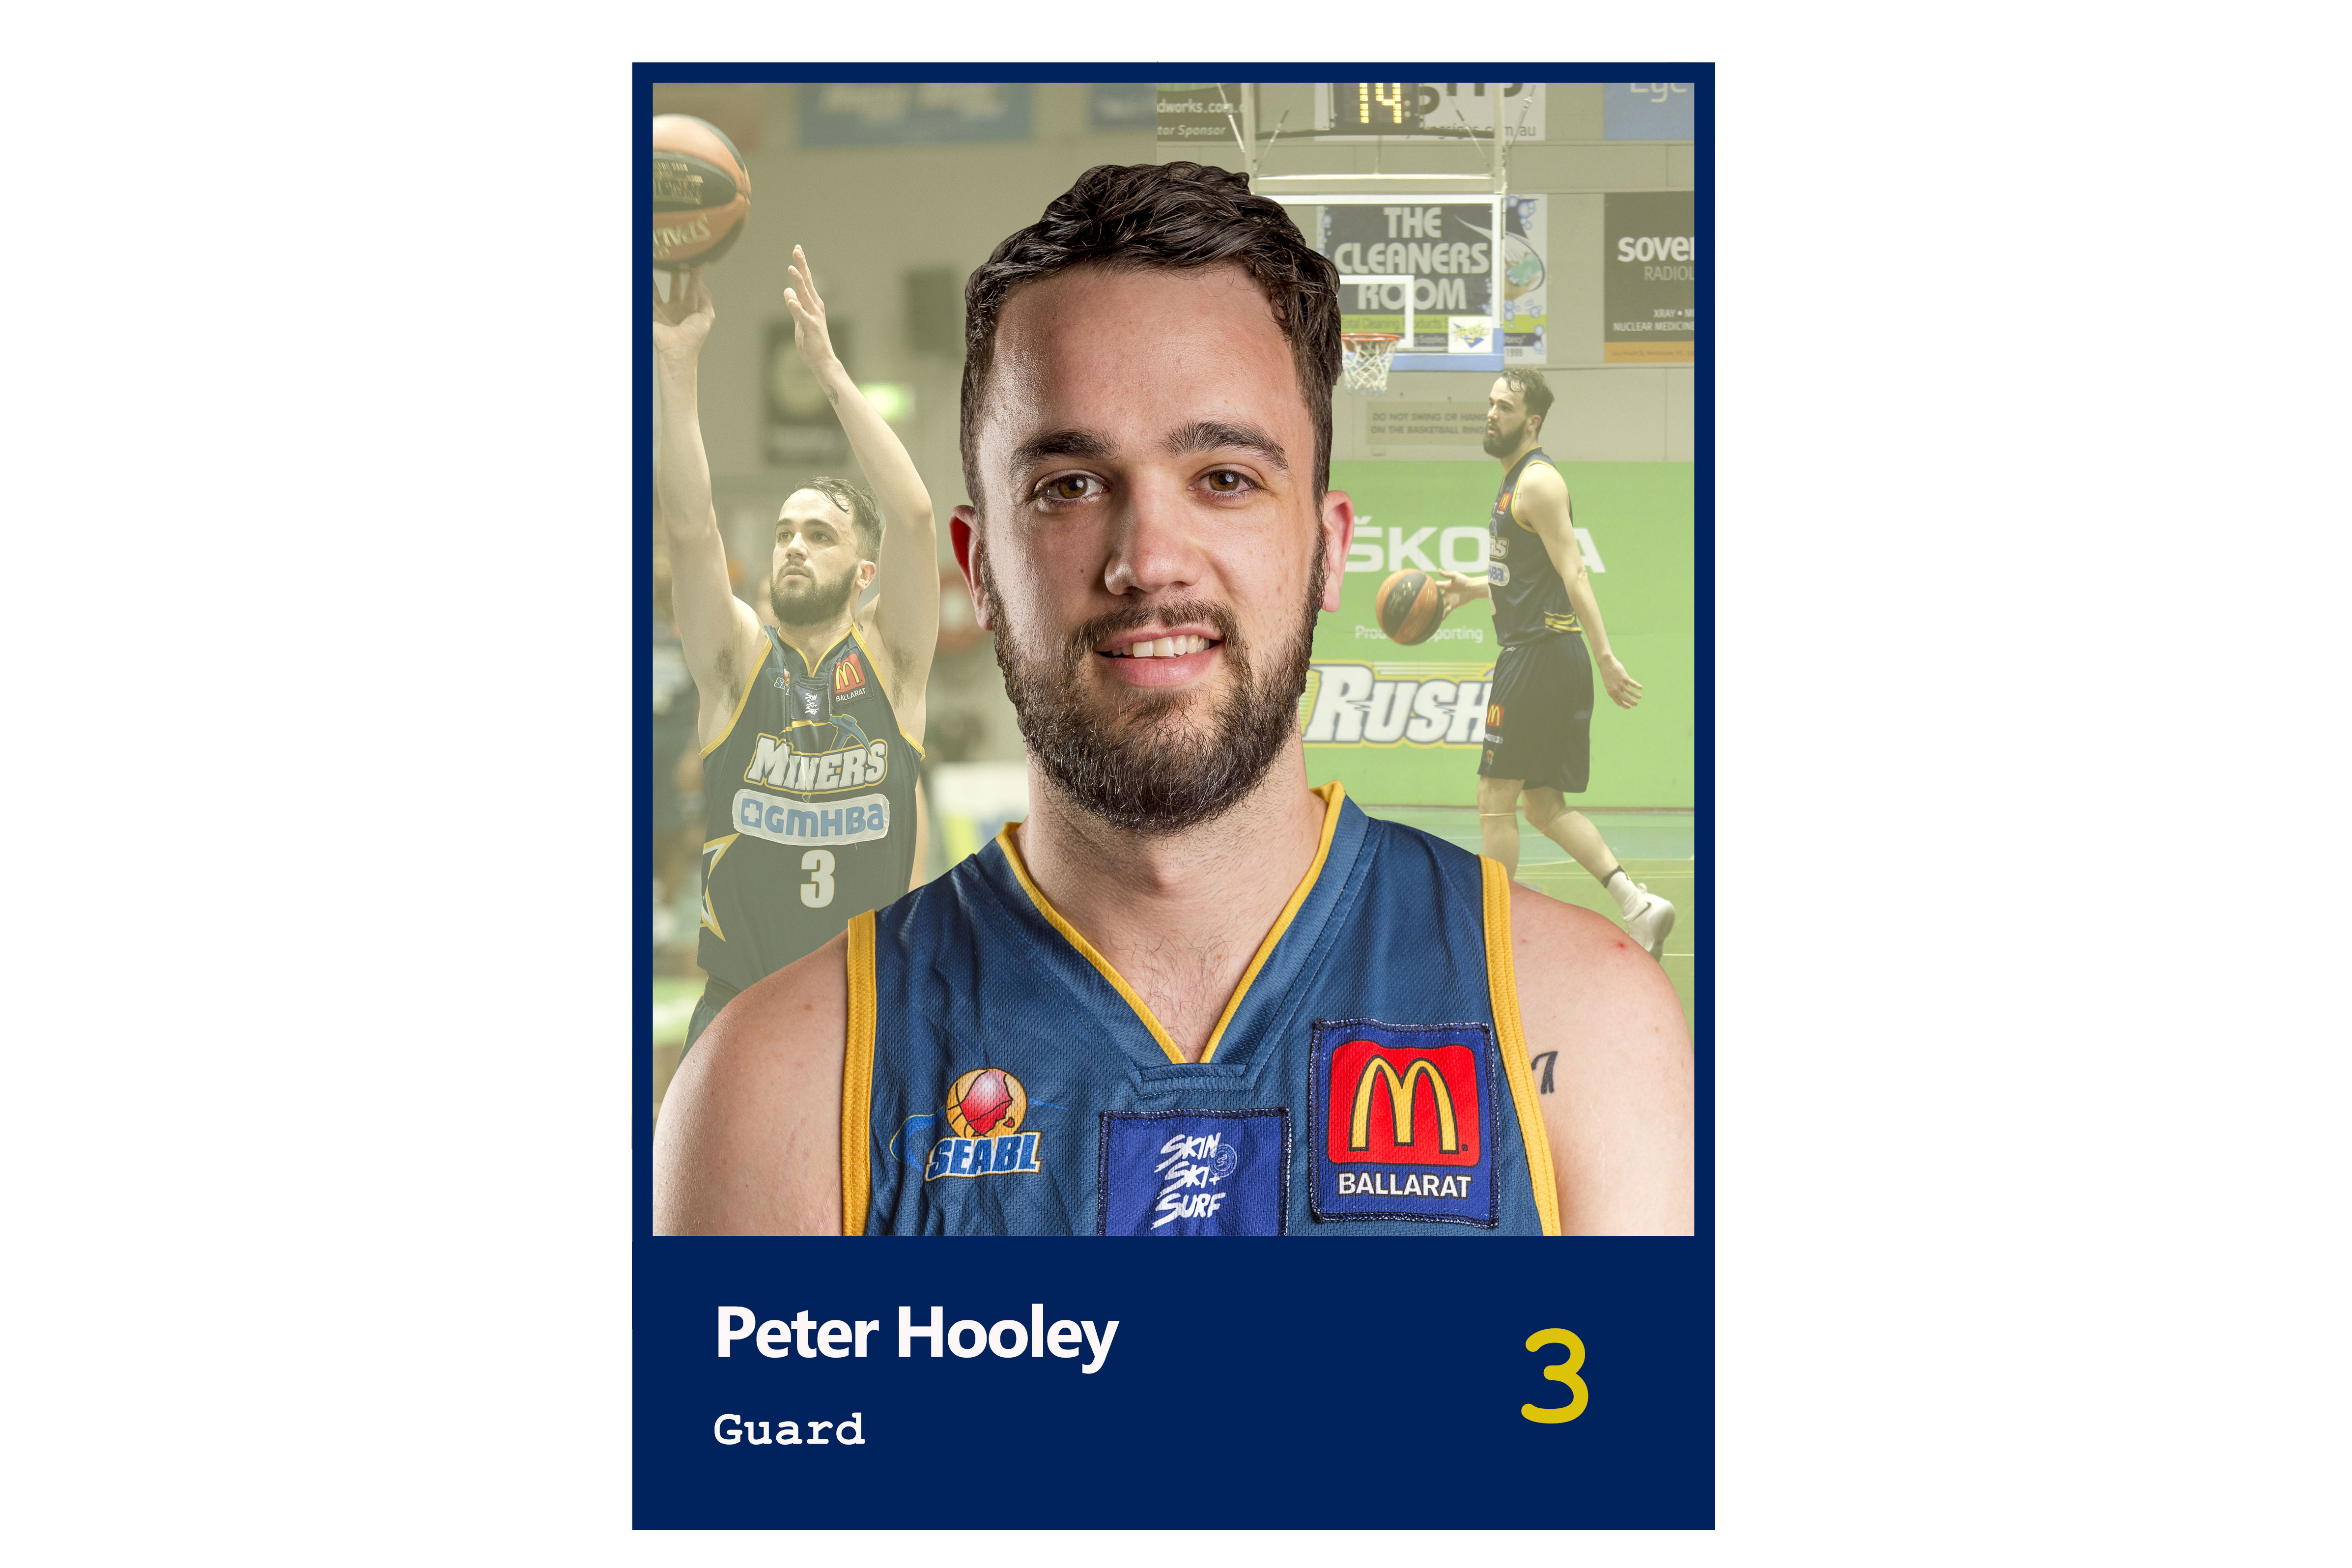 Peter hooley same size edit